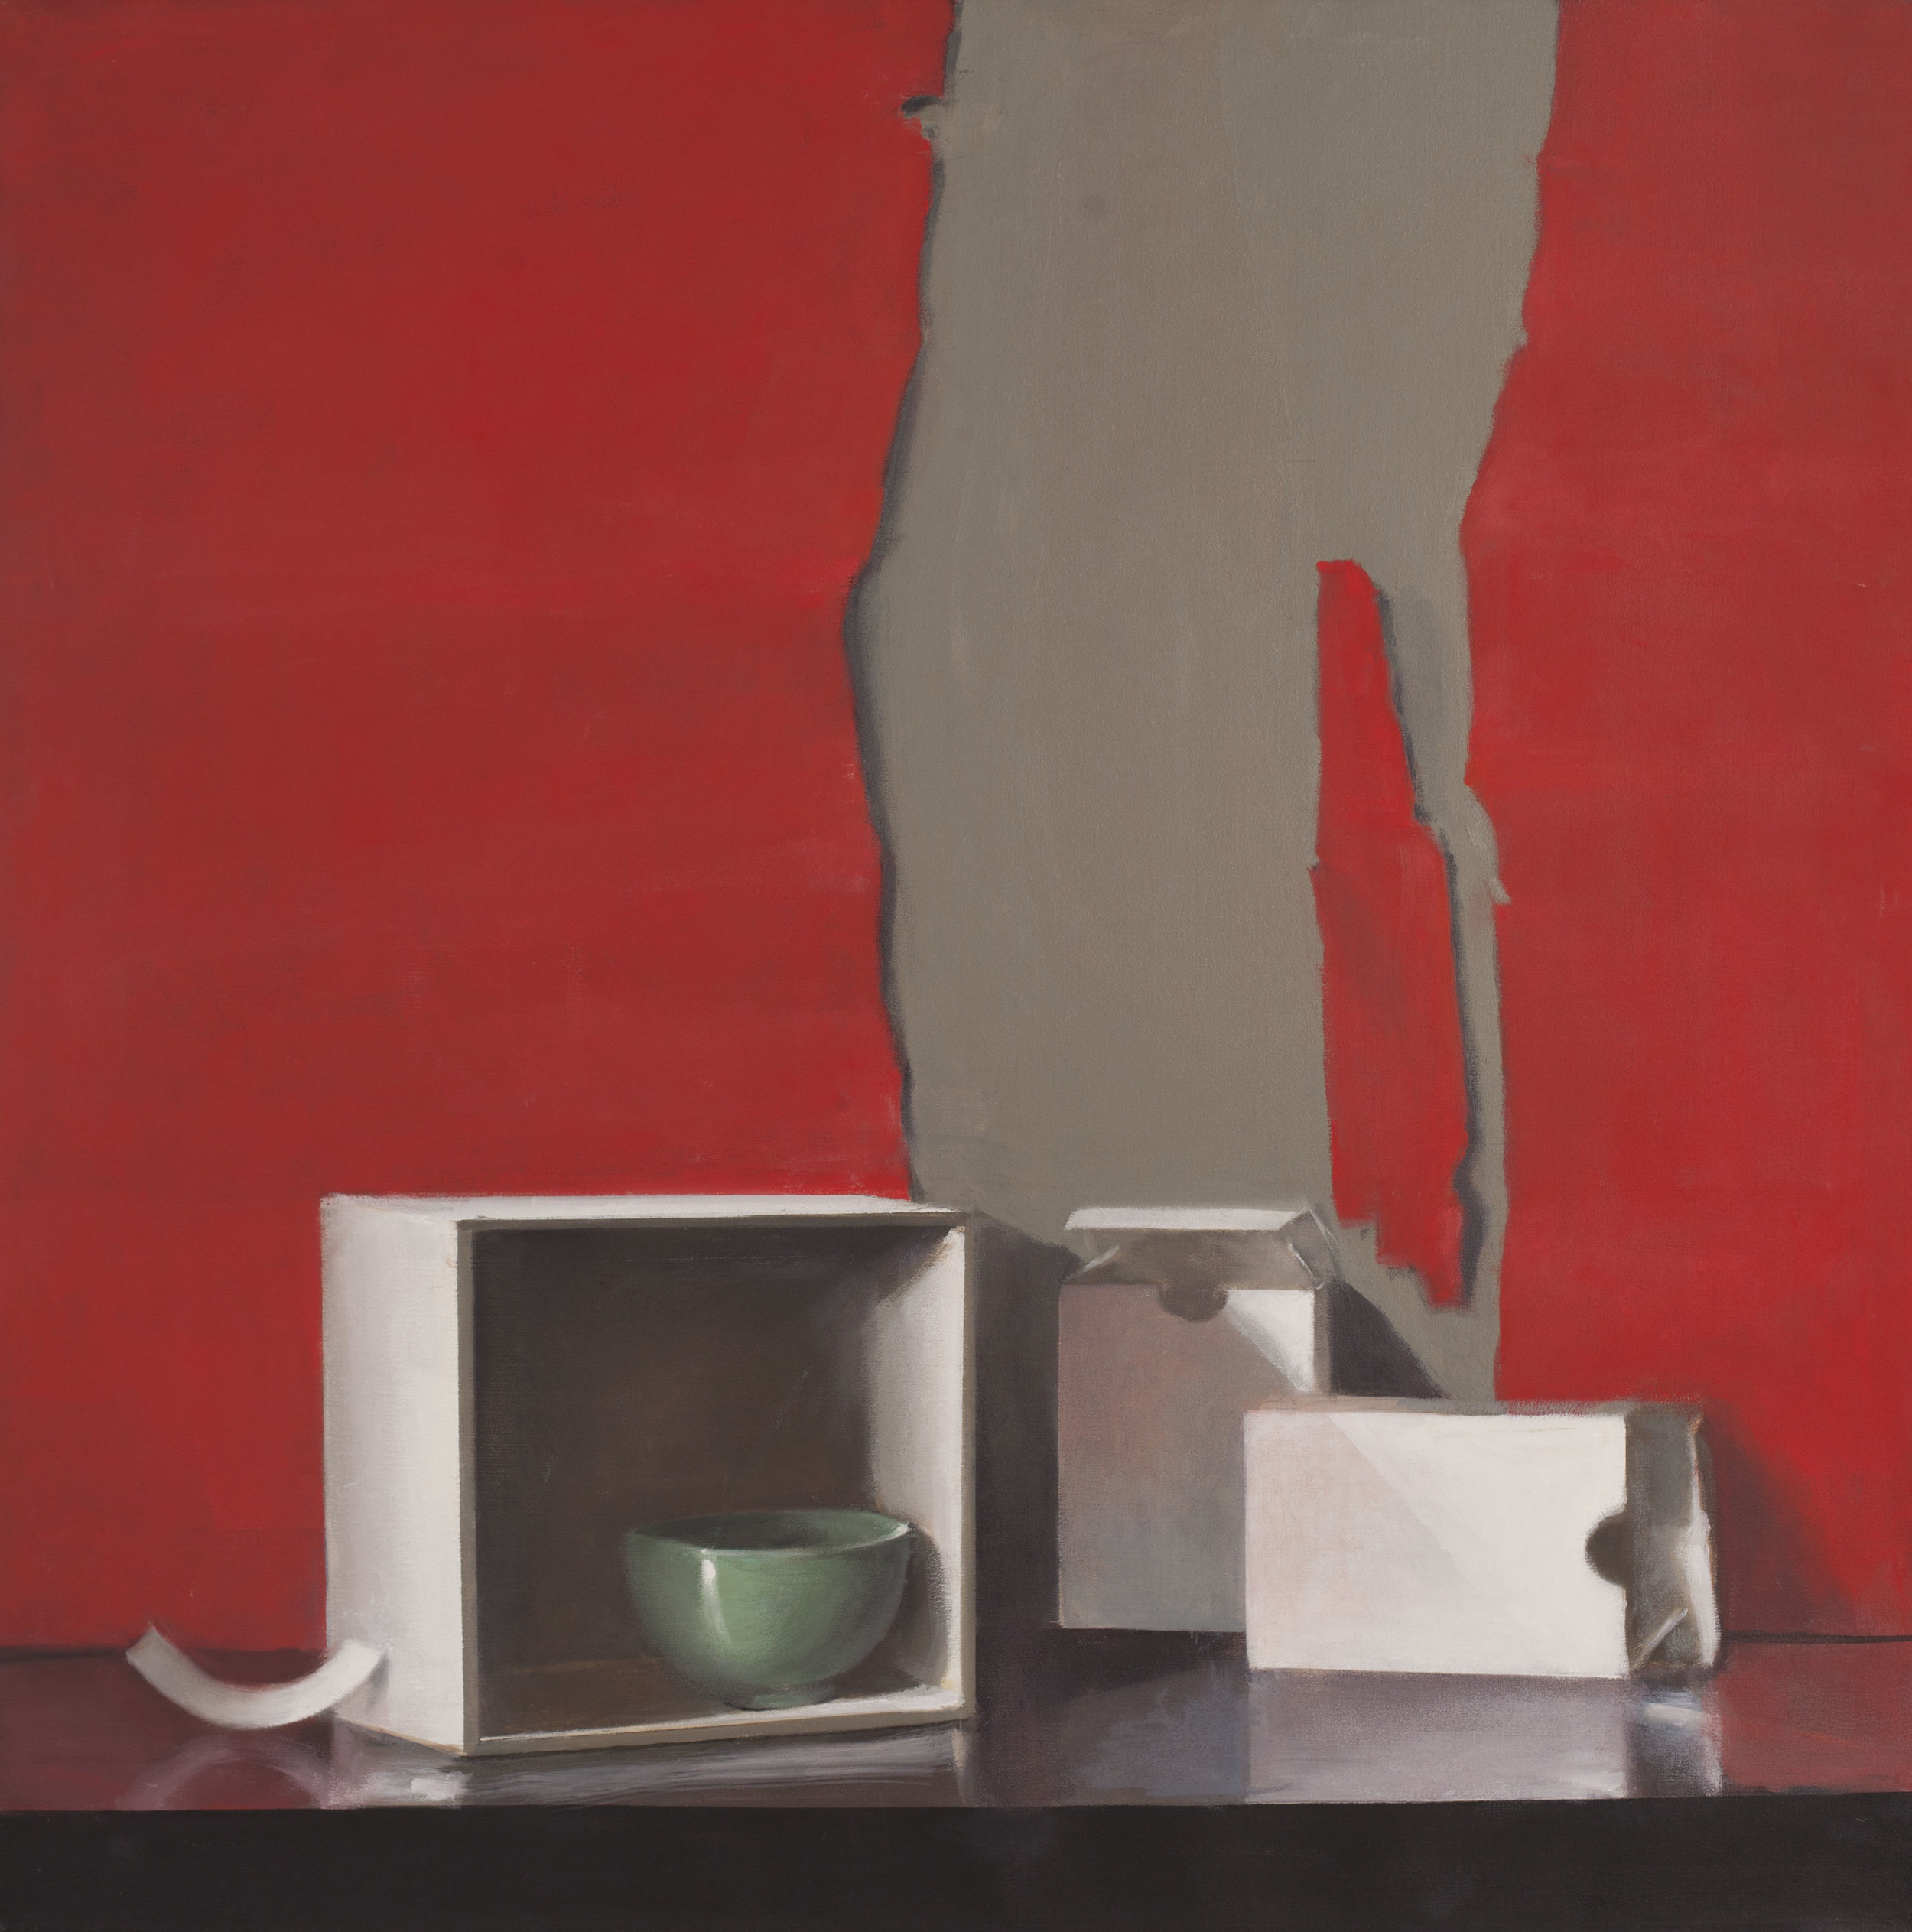 Raymond Han  (1931-2017)  Untitled (Still life, ripped red paper, green bowl, white box) Undated  Oil on linen 40 x 40 inches 101.6 x 101.6 cm